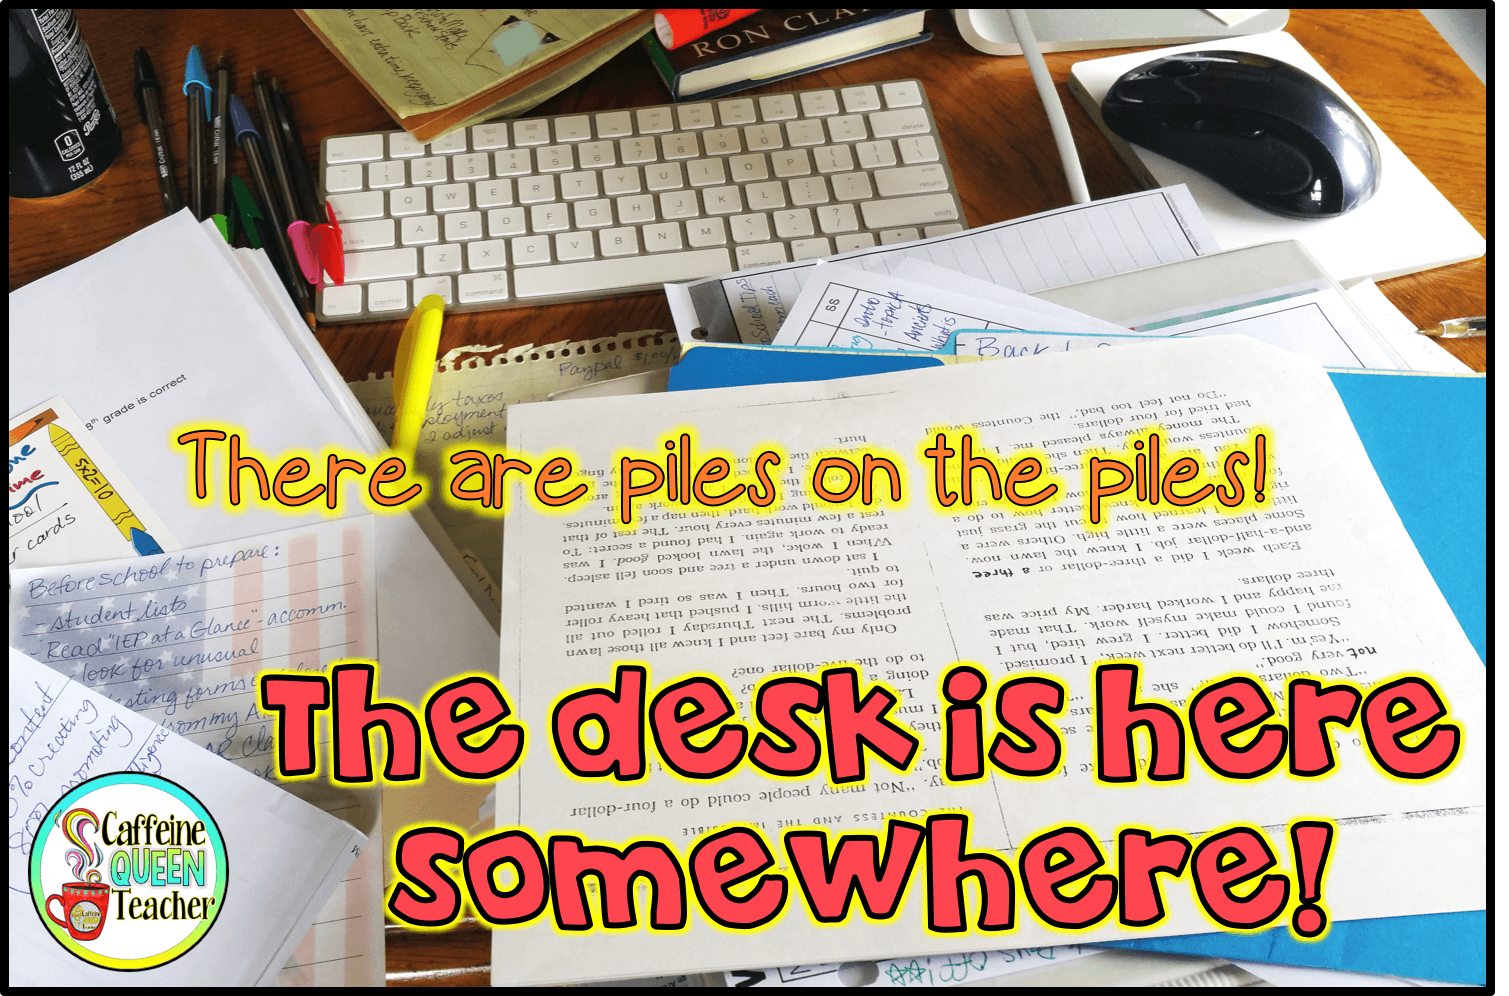 cluttered teacher desks are inefficient